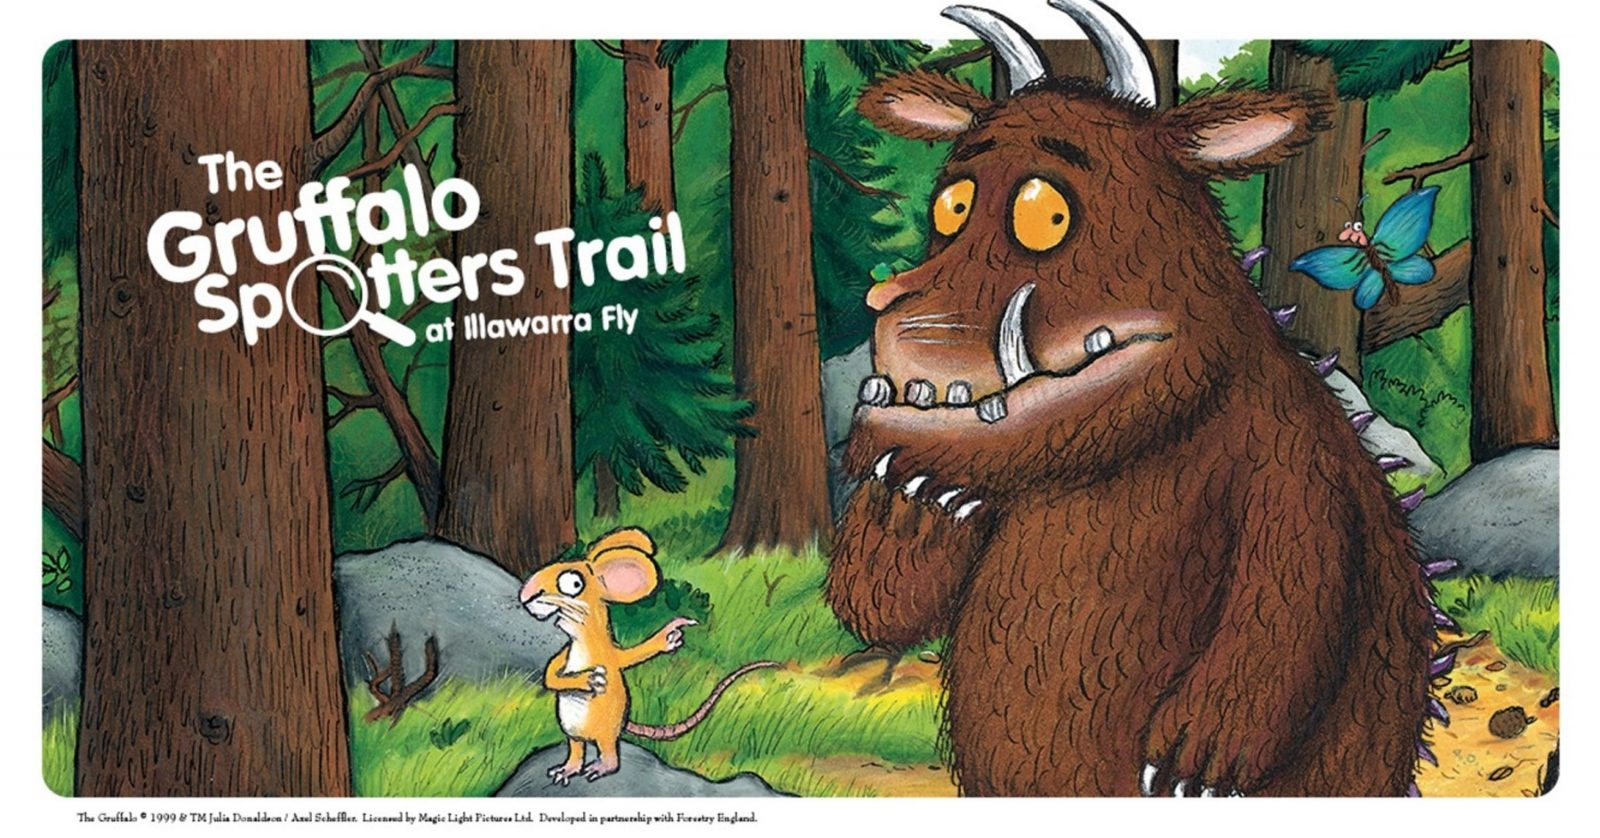 The Gruffalo Spotters Trail